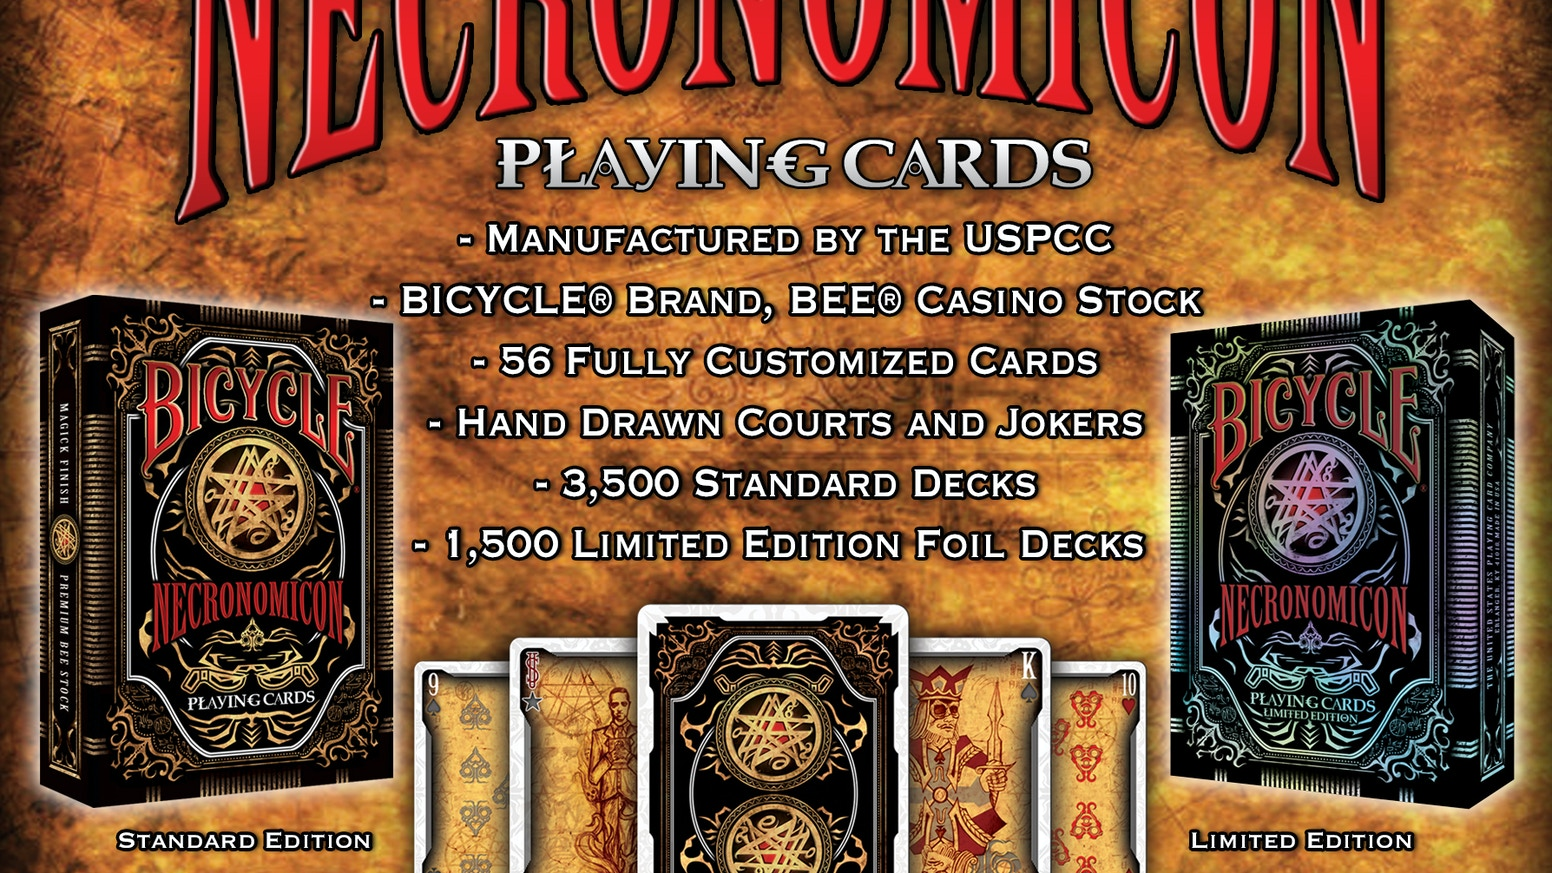 From the Creators of THE GRID Bicycle® deck comes NECRONOMICON. A 56 playing card deck. Printed by the USPCC on Premium BEE paper stock